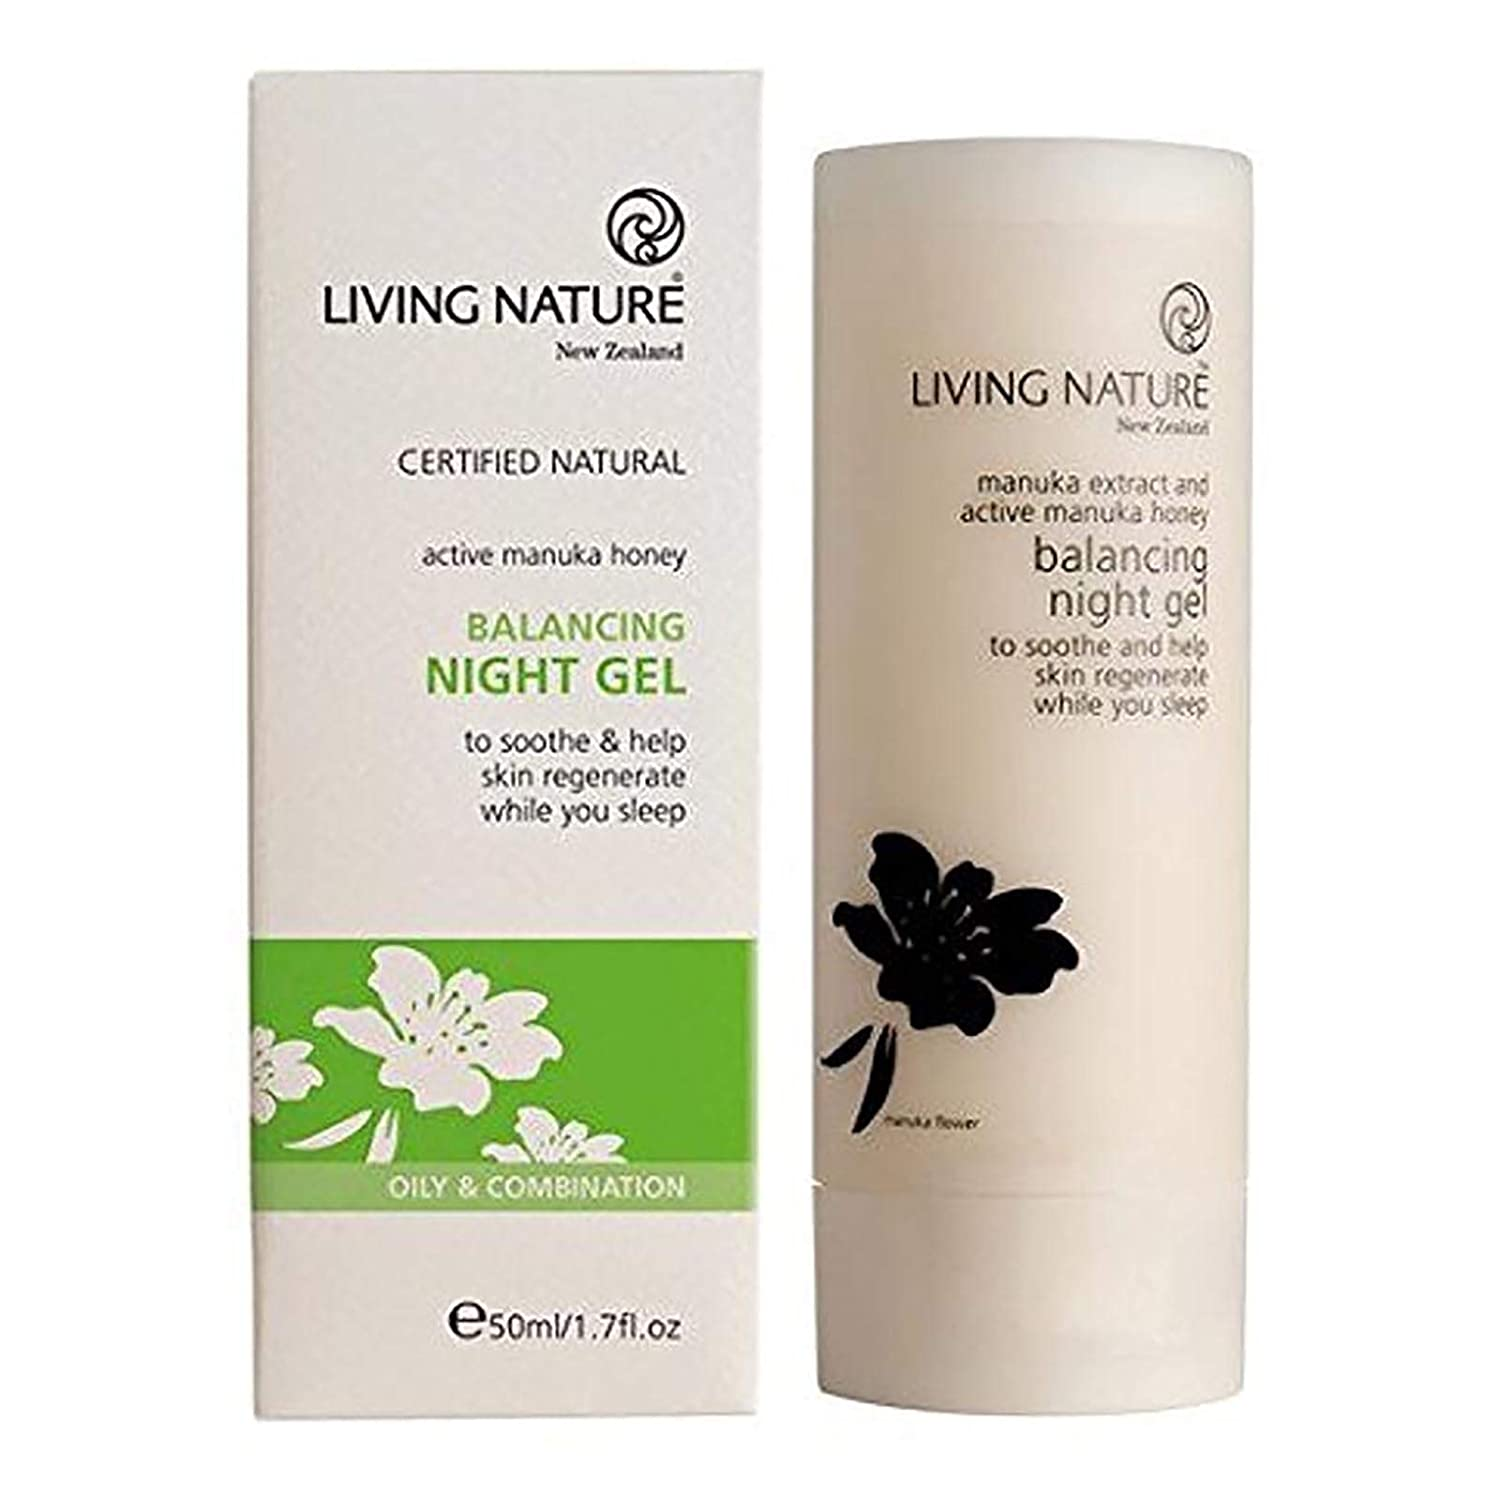 Living Nature Balancing Night Gel (oily/anti-acne)